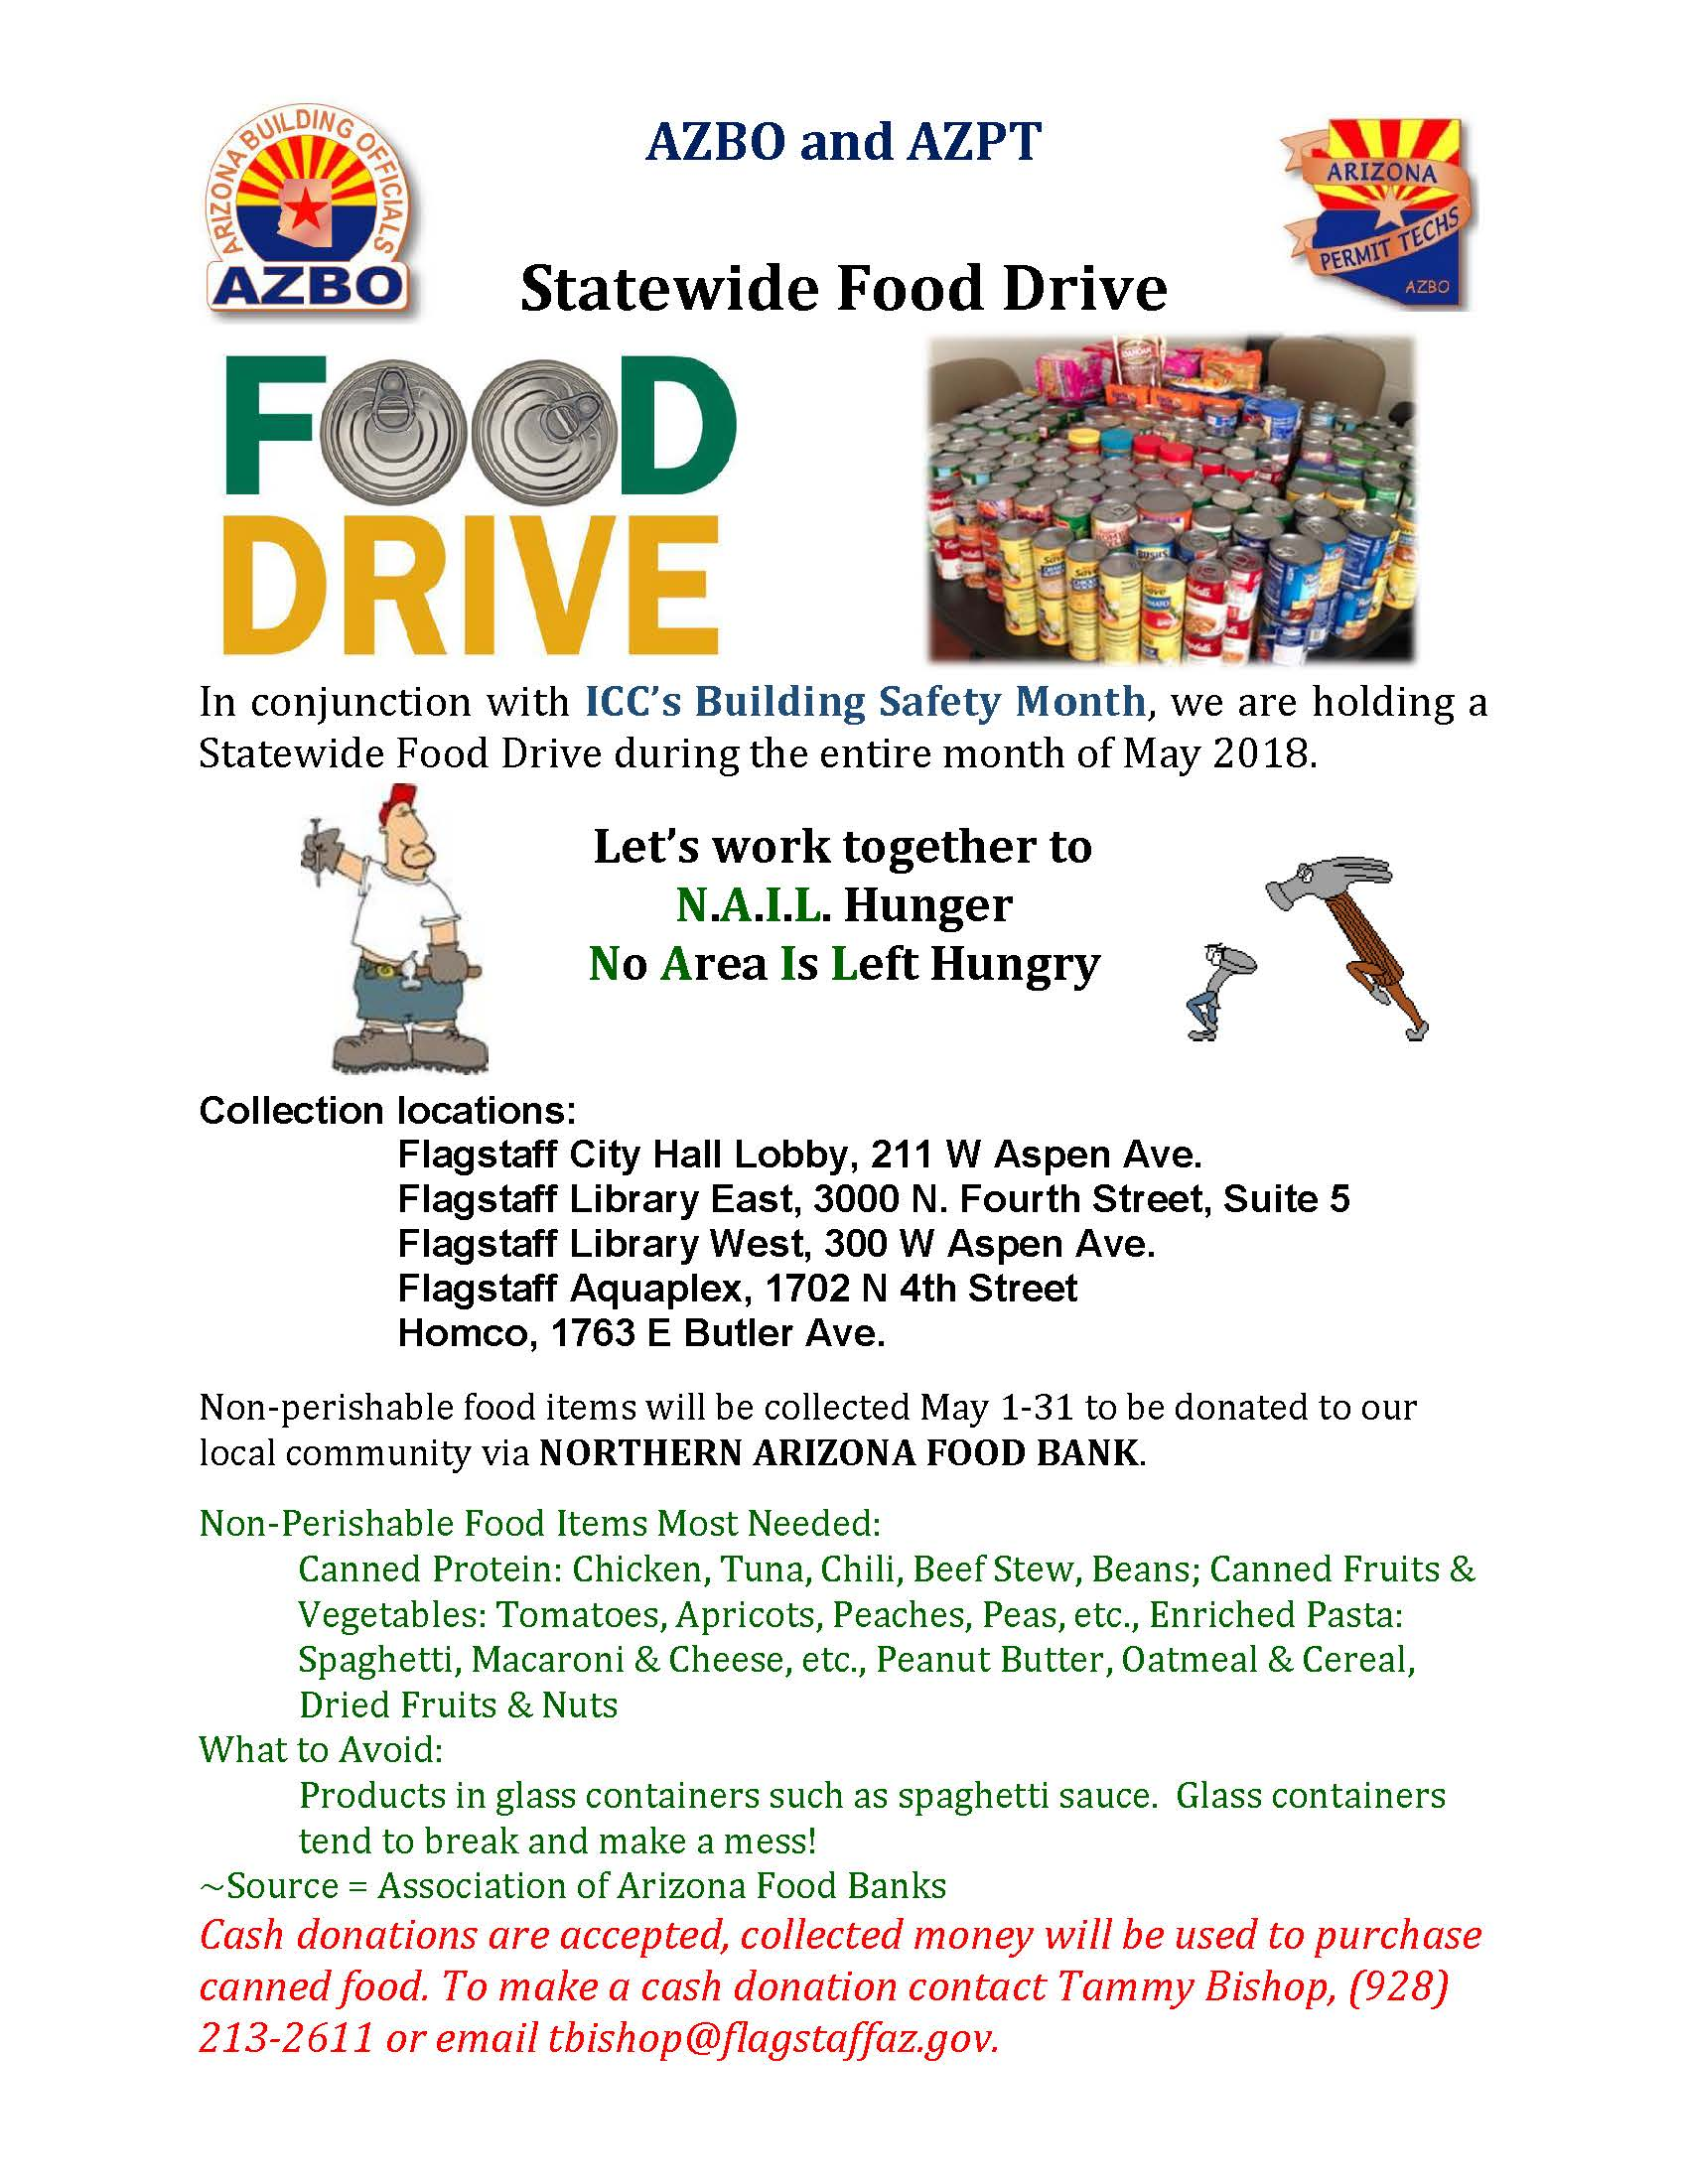 State Wide Food Drive Flyer Coconino (002)